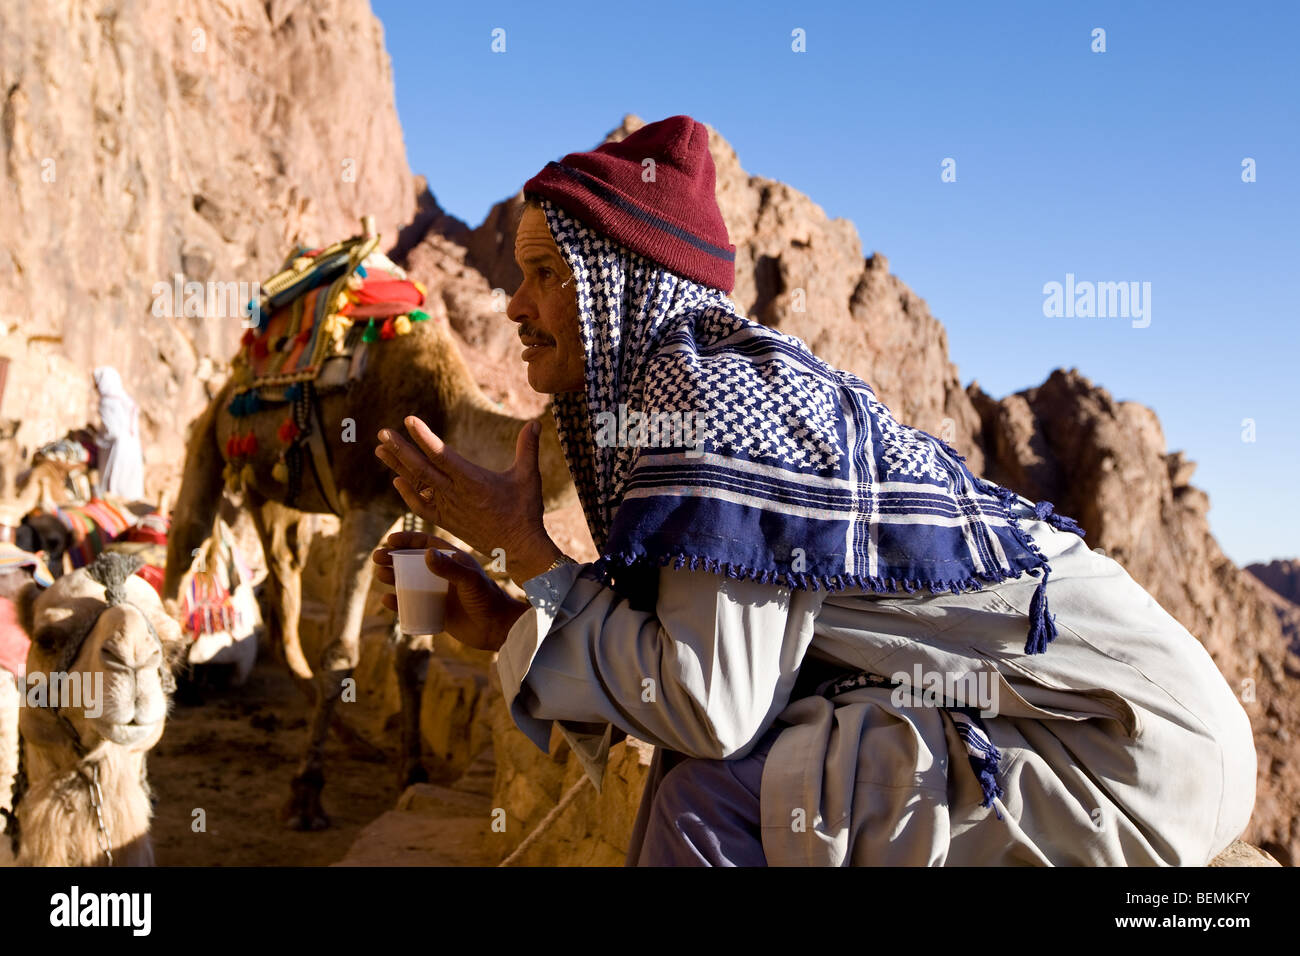 Egyptian bedouin guide and camel early morning on trek from Mount Sinai, Egypt, Middle East - Stock Image